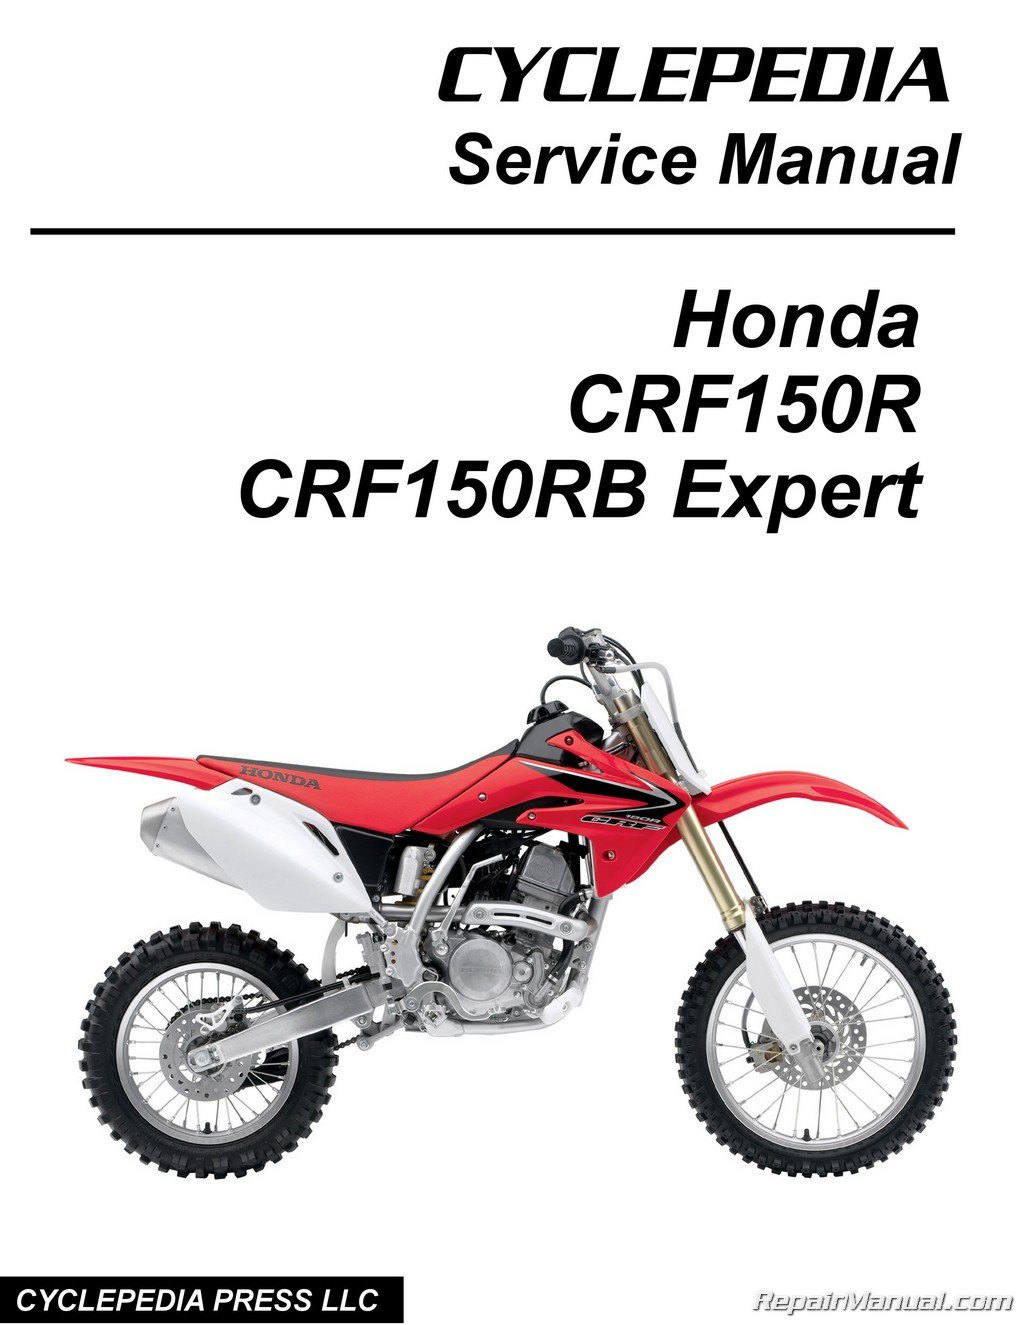 CPP-164-P Honda CRF150R CRF150RB Expert Cyclepedia Printed Motorcycle  Service Manual: Manufacturer: Amazon.com: Books